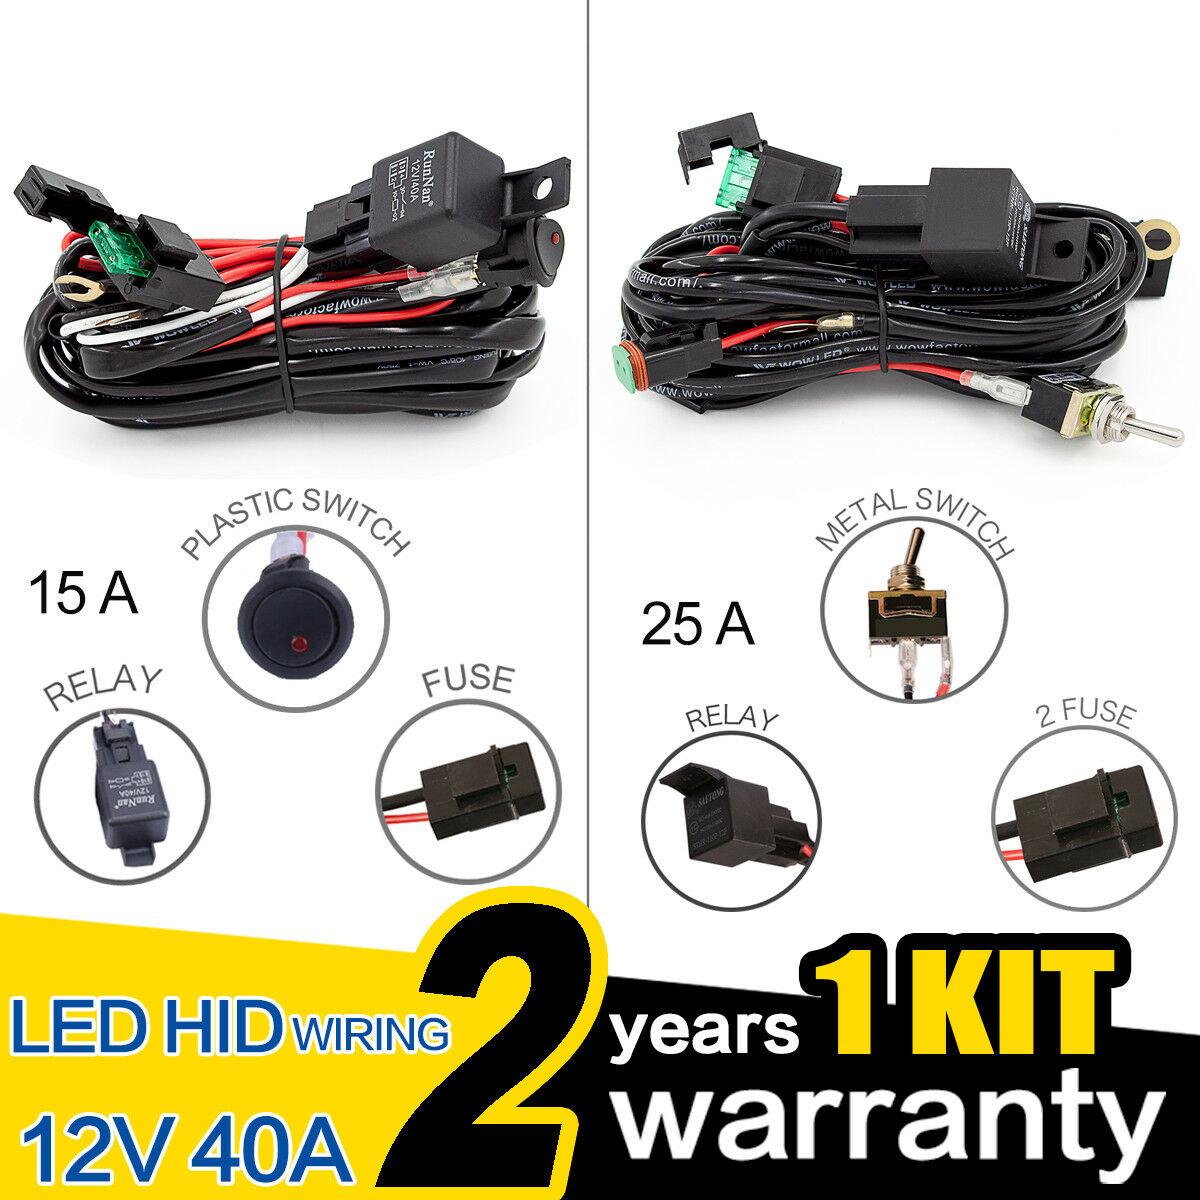 Wow Premium Led Hid Driving Light Bar Wiring Harness 12v 25a 15a Lightbar Switch Relay 1 Of 7free Shipping See More